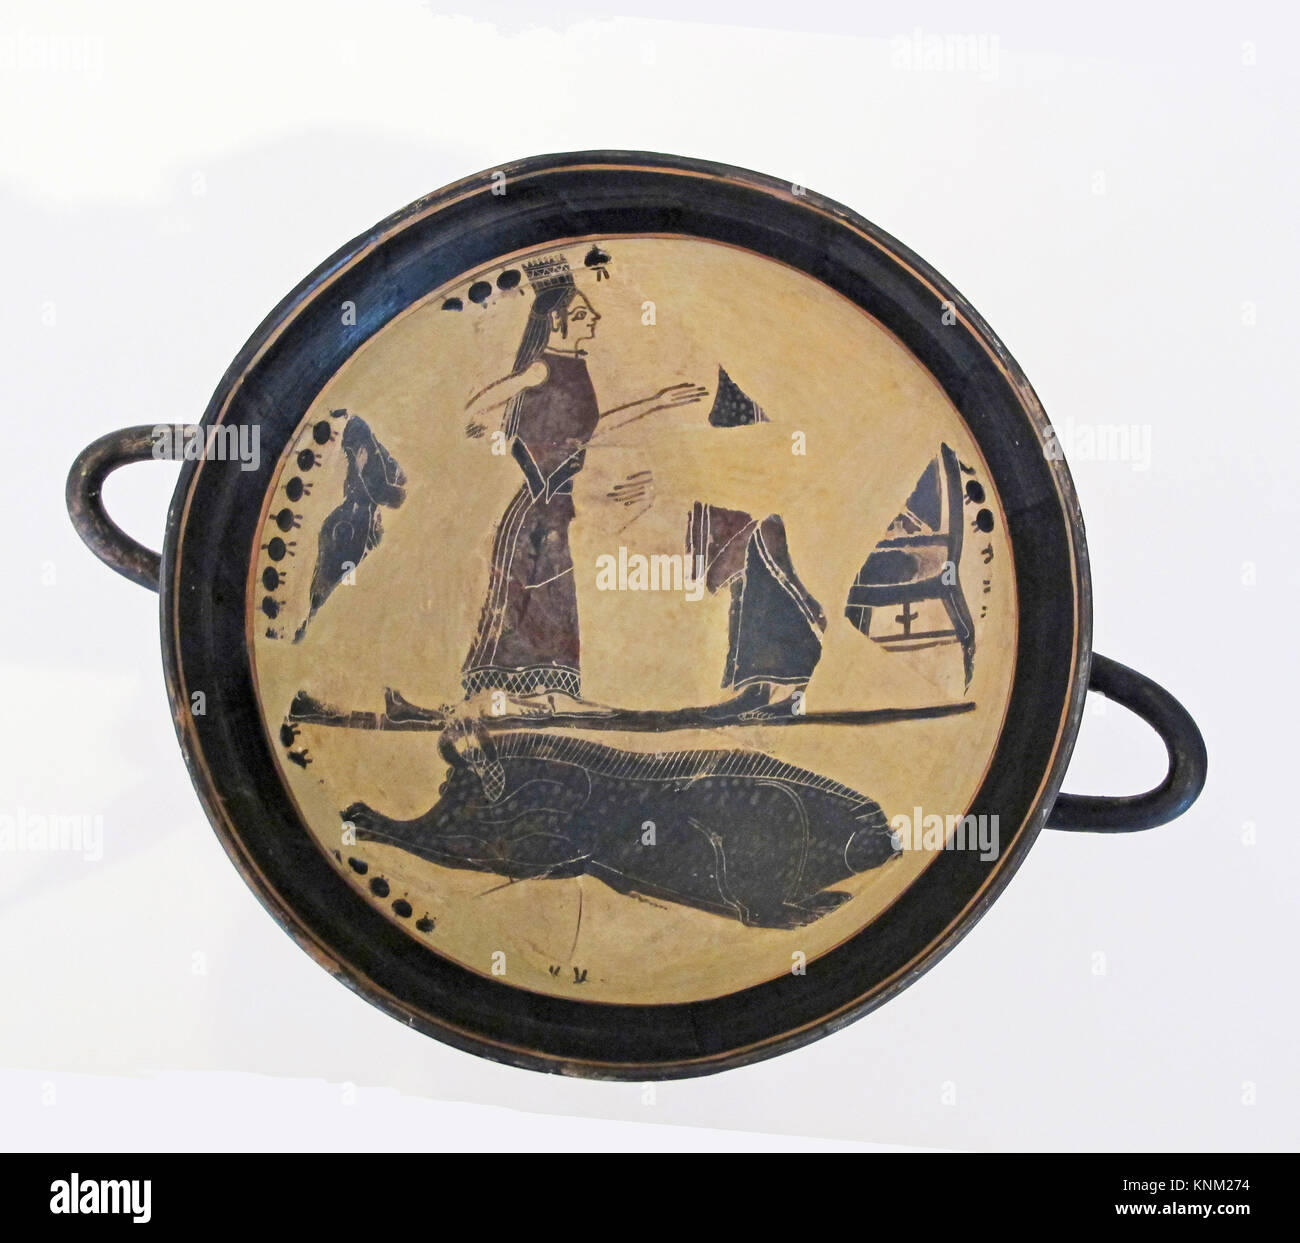 Terracotta kylix (drinking cup). Attributed to the Boreads Painter; Period: Archaic; Date: ca. 570-560 B.C; Culture: - Stock Image